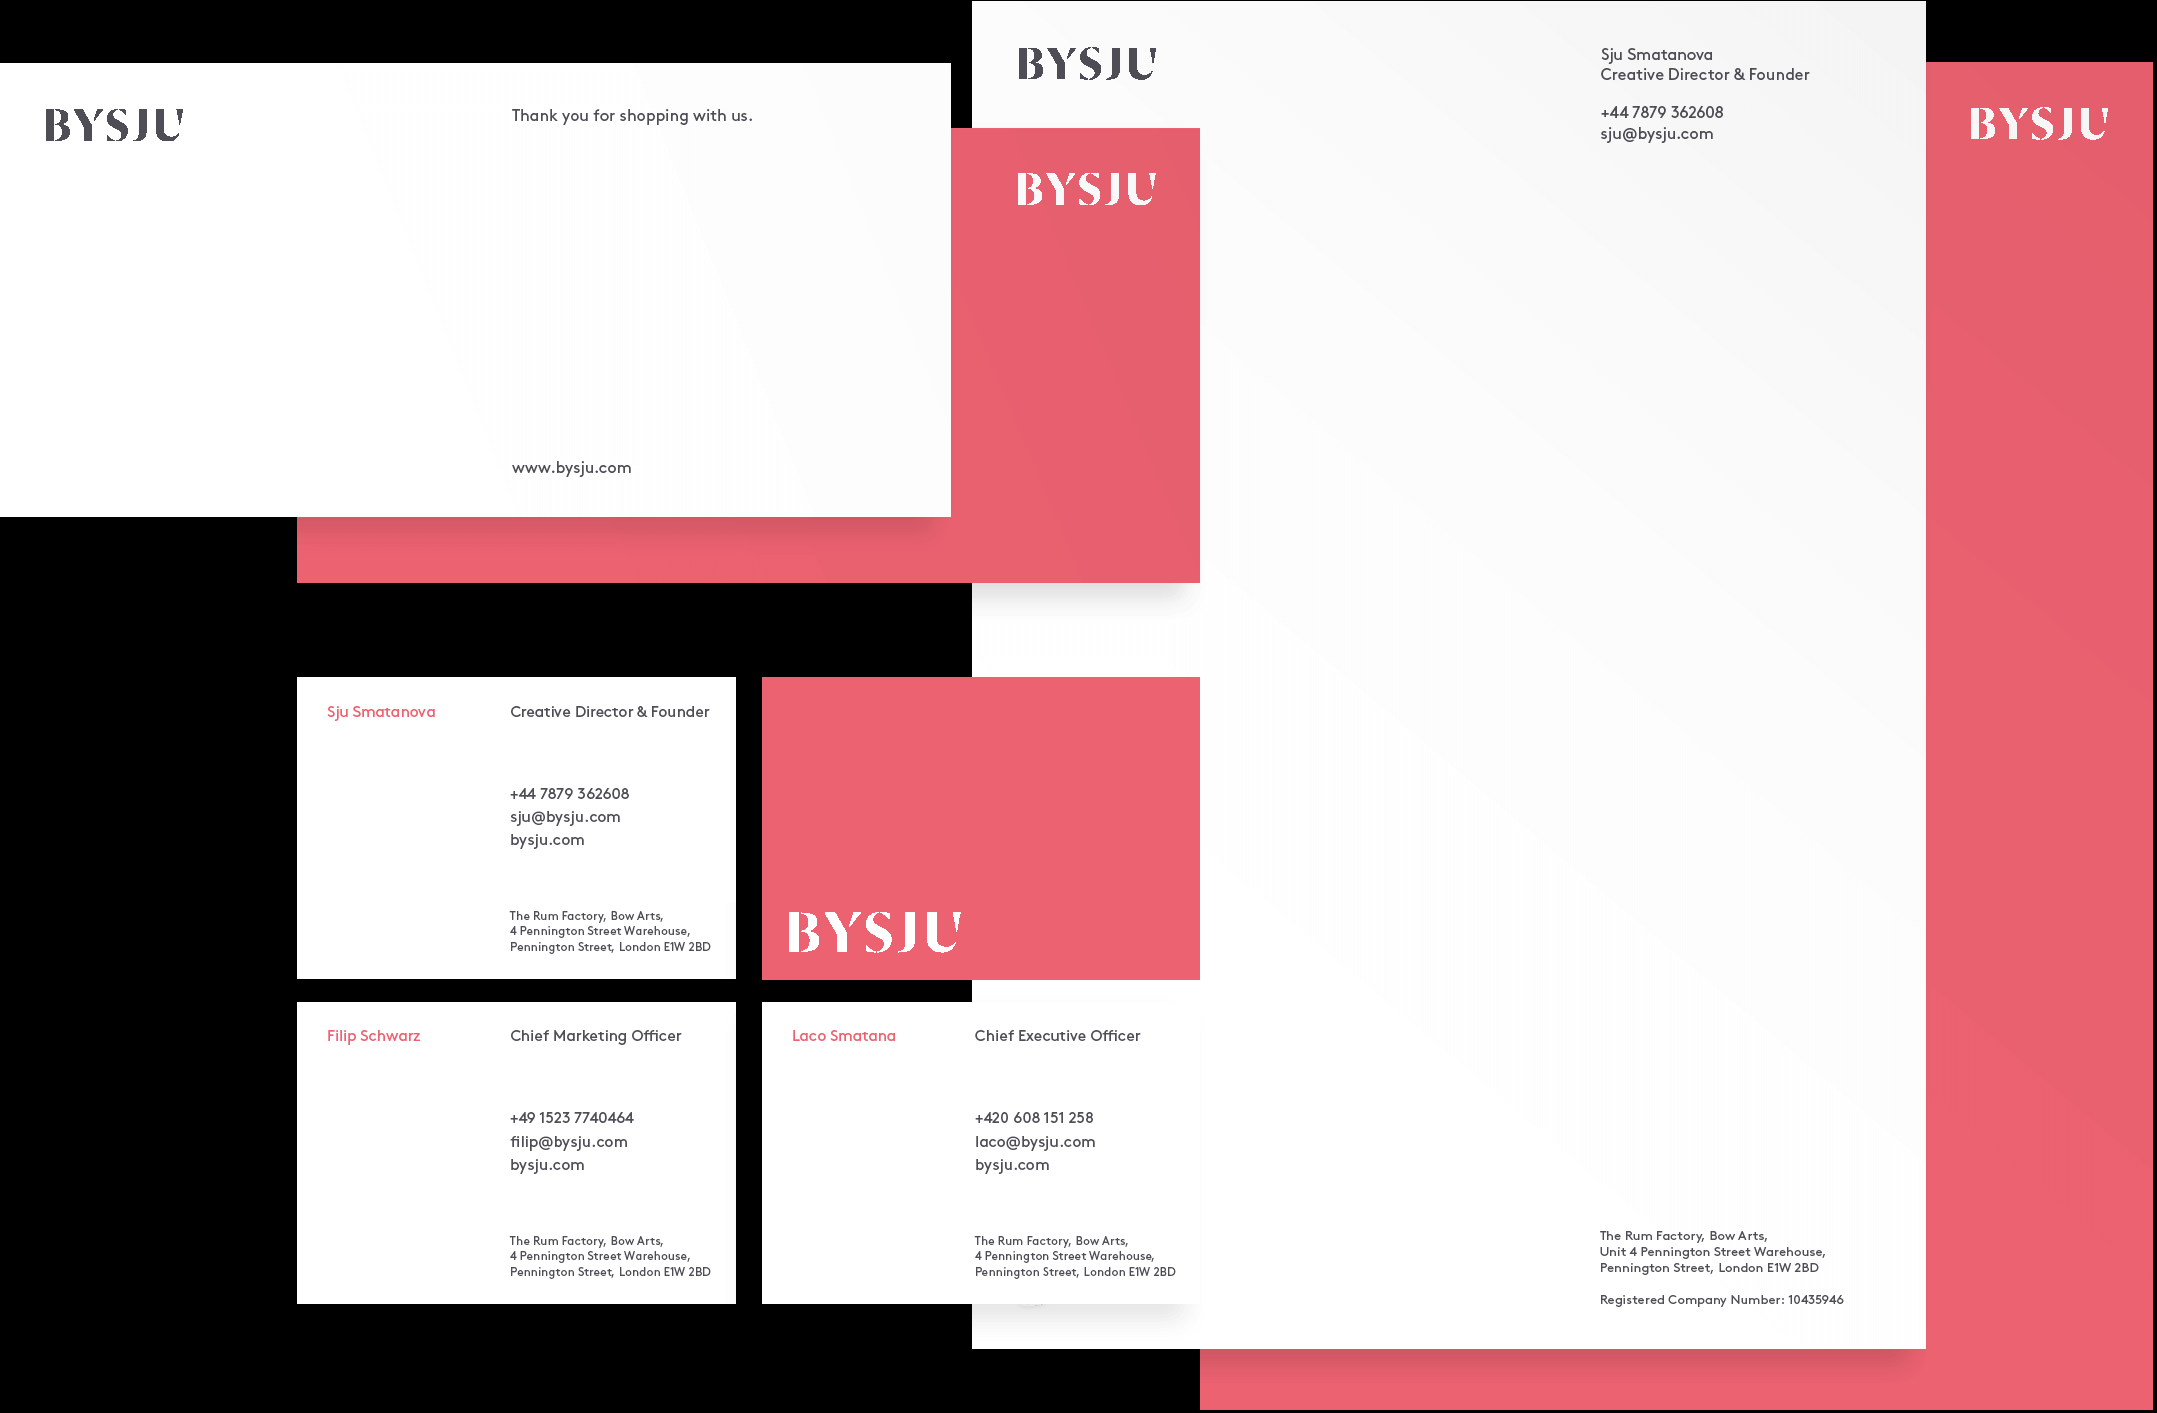 Brand Identity, for London based BYSJU